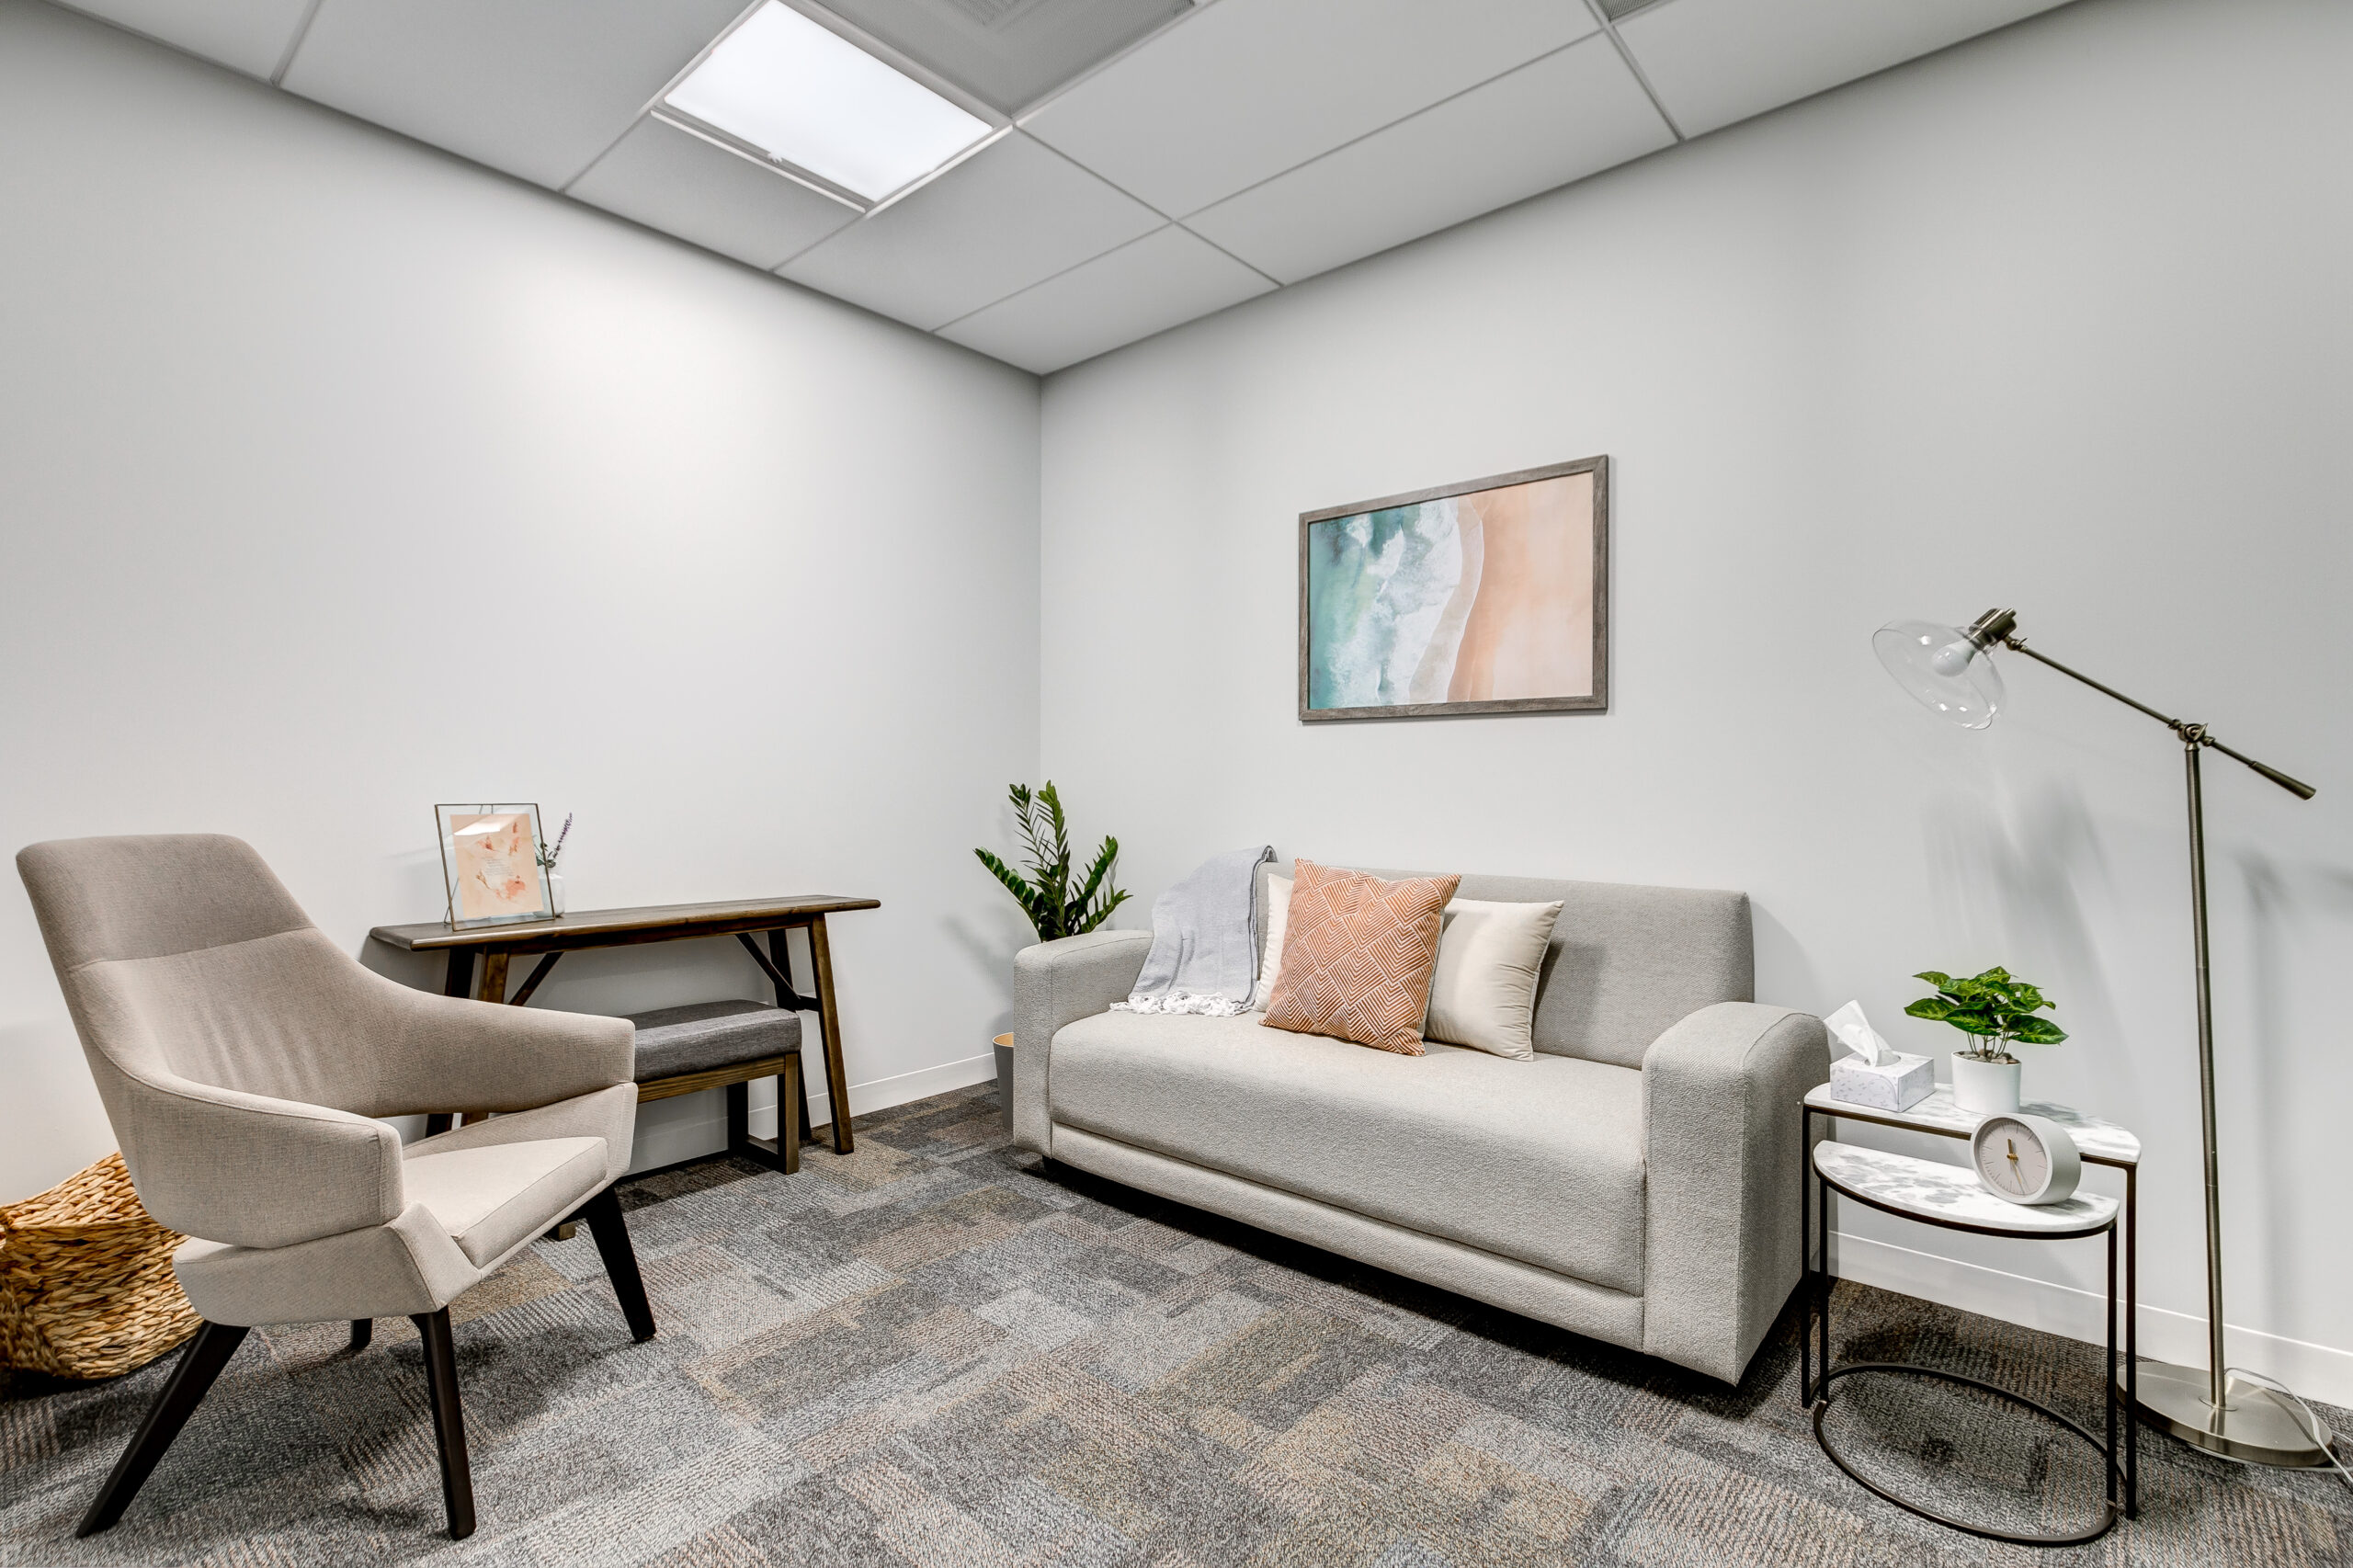 Standard Therapy Room at Ethera Irvine